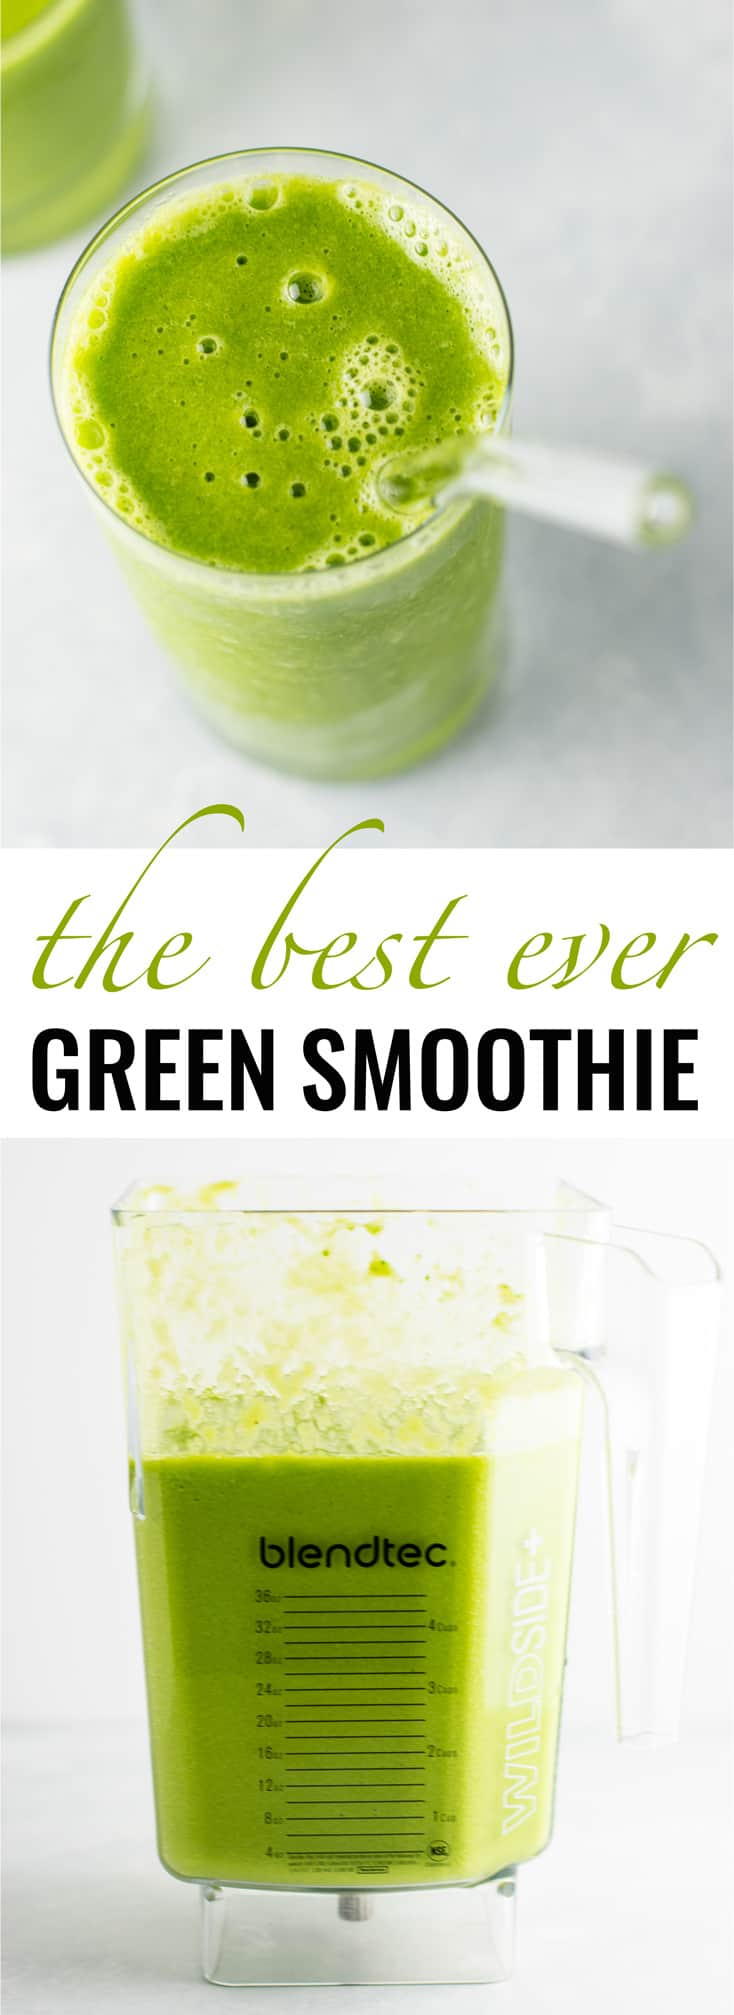 The BEST EVER green smoothie recipe made with kale, ginger, oranges, lemon, frozen banana, frozen peaches, and water. A ridiculously good for you delicious green smoothie that the whole family will love! #greensmoothierecipe #vegan #kale #drinks